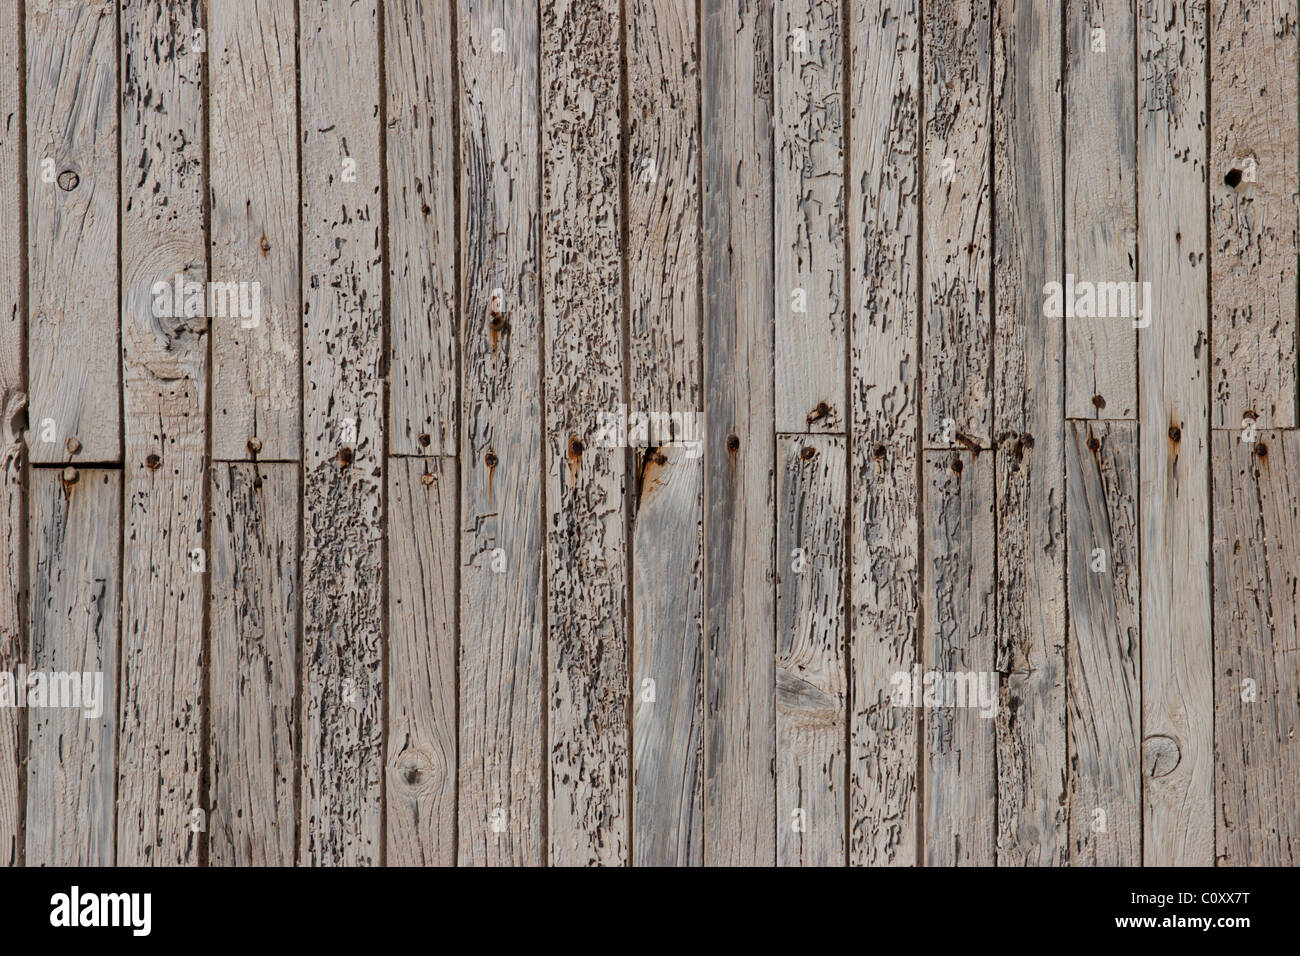 Barn Boards Whitewash Washed Out Wall Fence Wallpaper Background